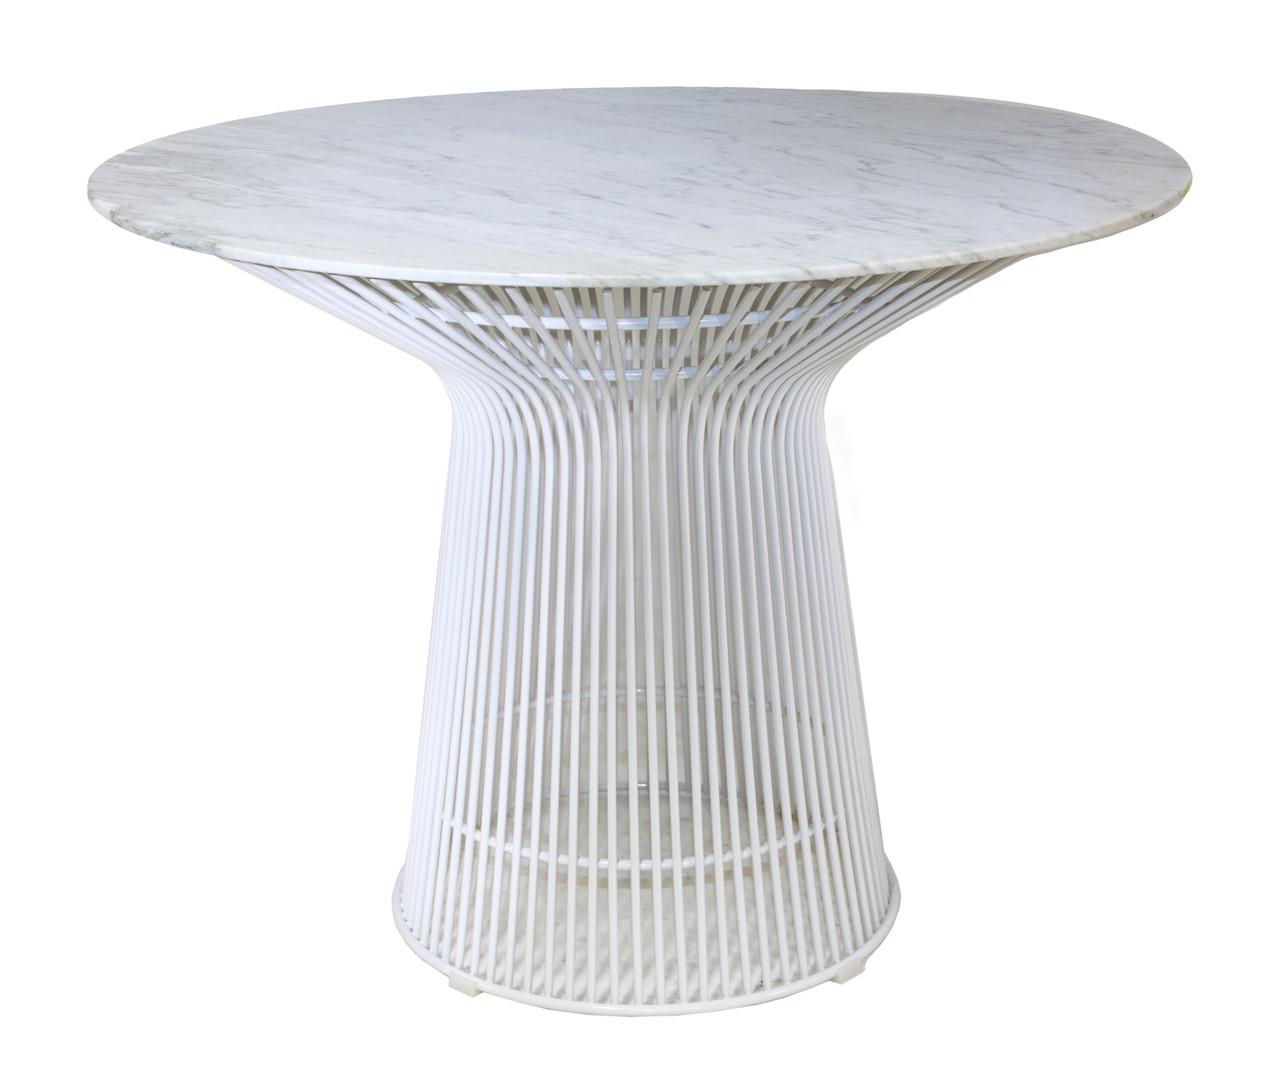 Replica Warren Platner - Wire Dining Table - White Powdercoated - Marble Top - 150cm